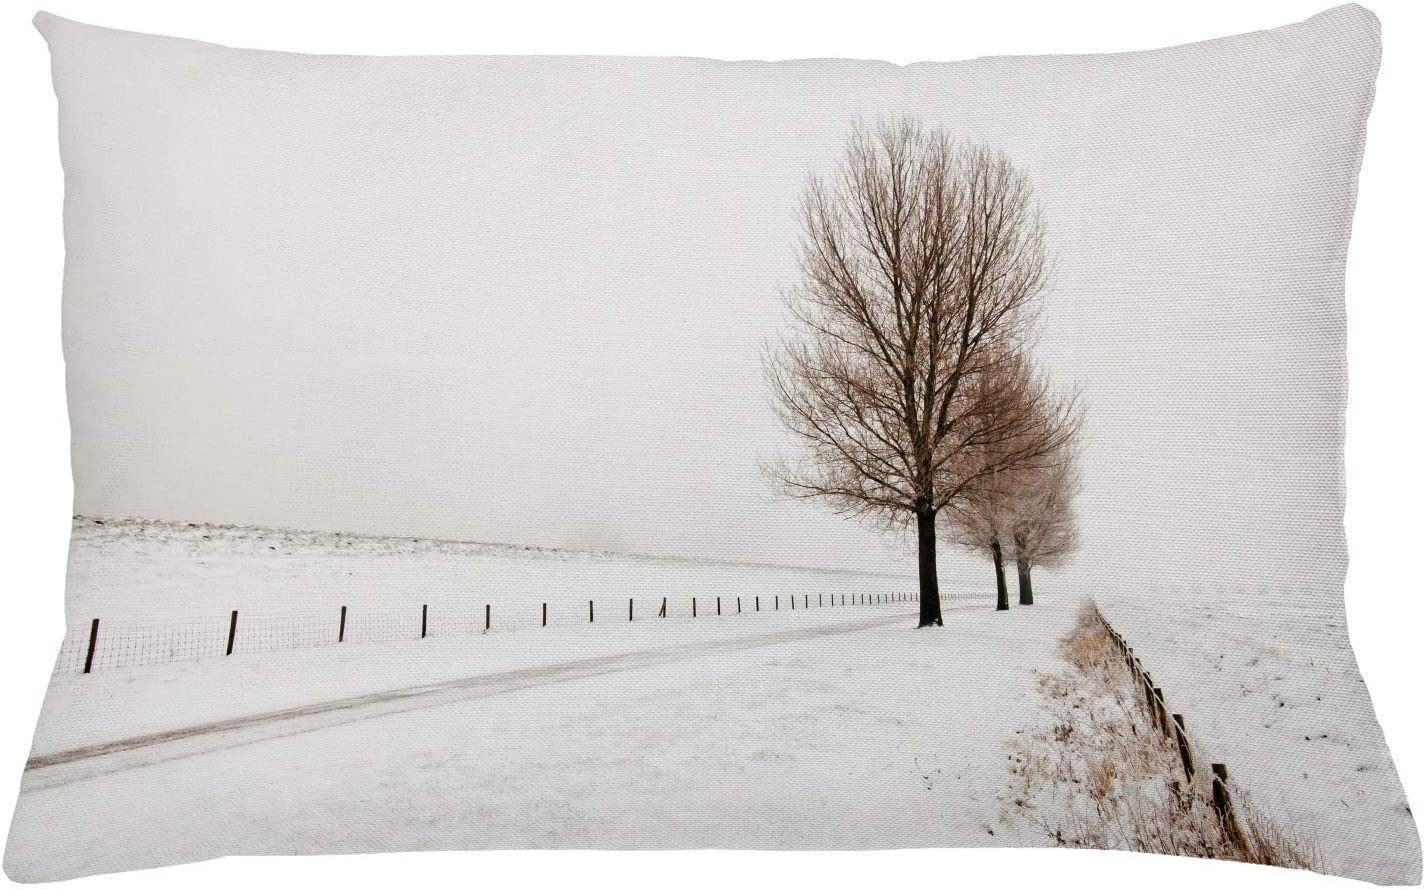 Amazon Com Ambesonne Rustic Throw Pillow Cushion Cover Row Of Large And Bare Beech Trees In Snow Covered Winter Frozen Photography Art Decorative Rectangle Accent Pillow Case 26 X 16 White Brown Home